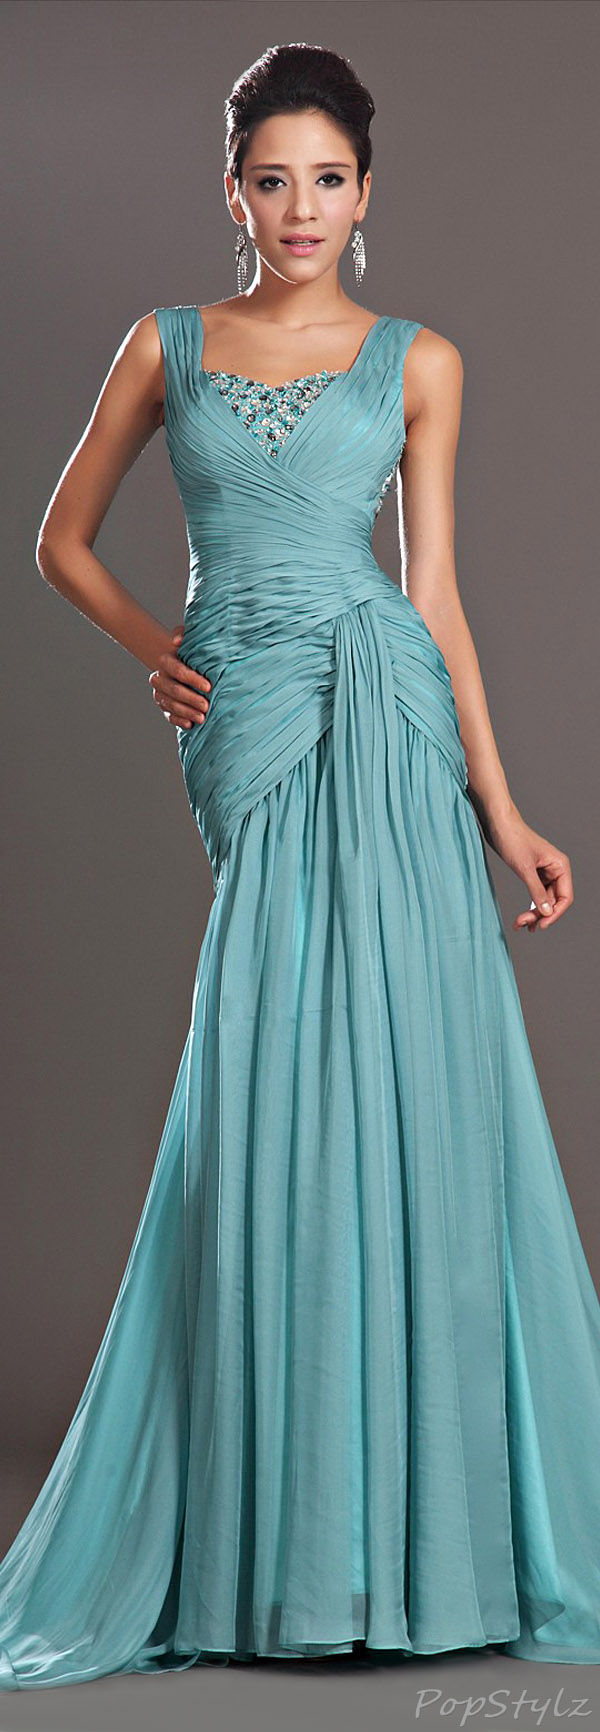 eDressit Fabulous Evening Dress